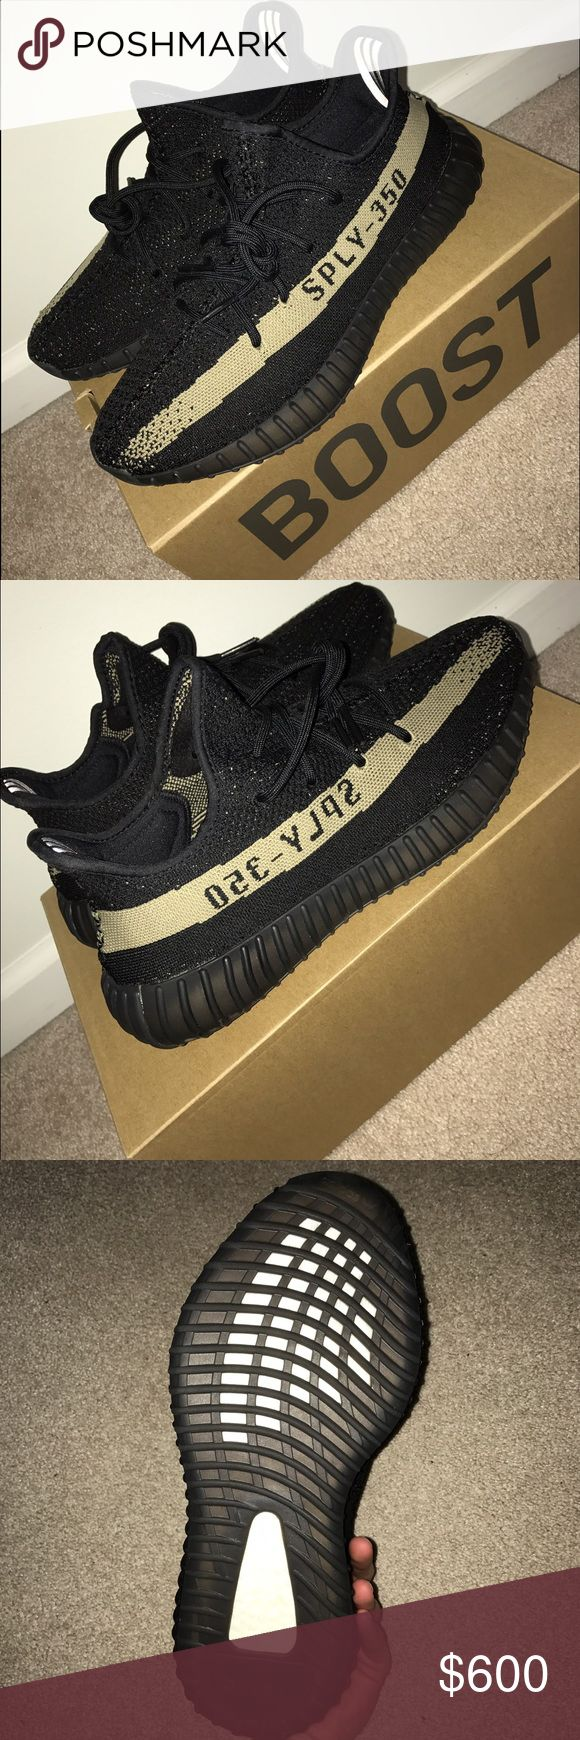 Shop Australia yeezy boost 350 V2 black / green BY9611 Sizing Online